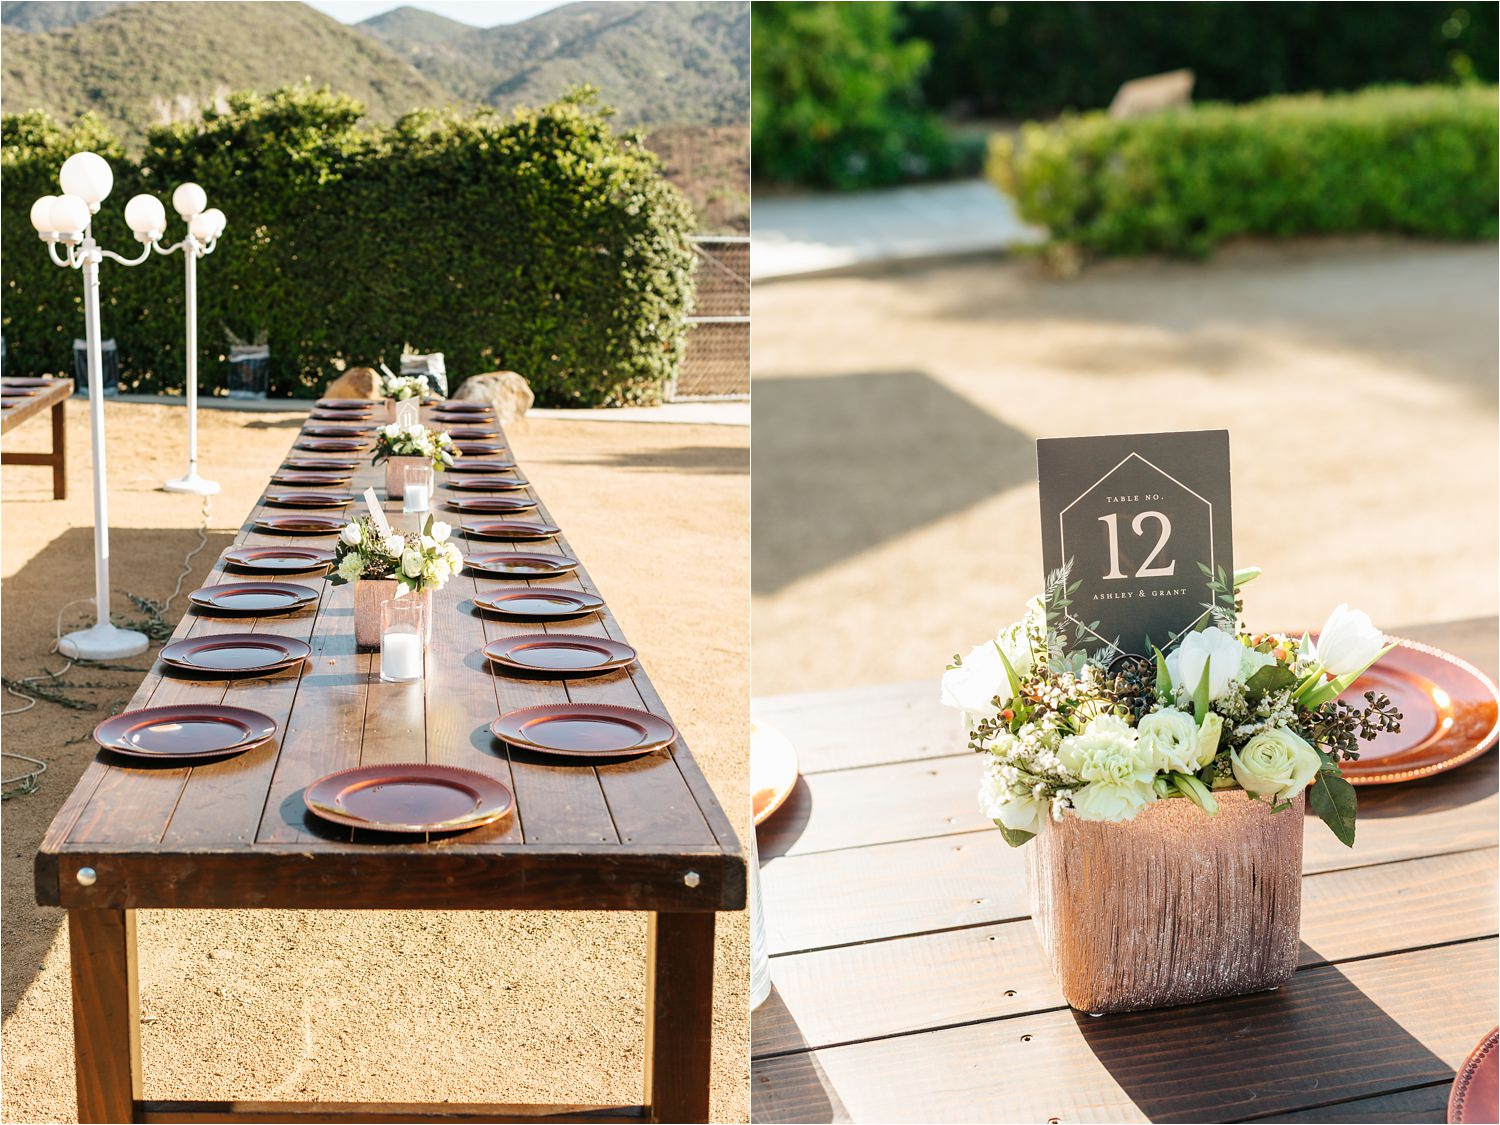 Reception details - backyard wedding details - DIY wedding in California - https://brittneyhannonphotography.com